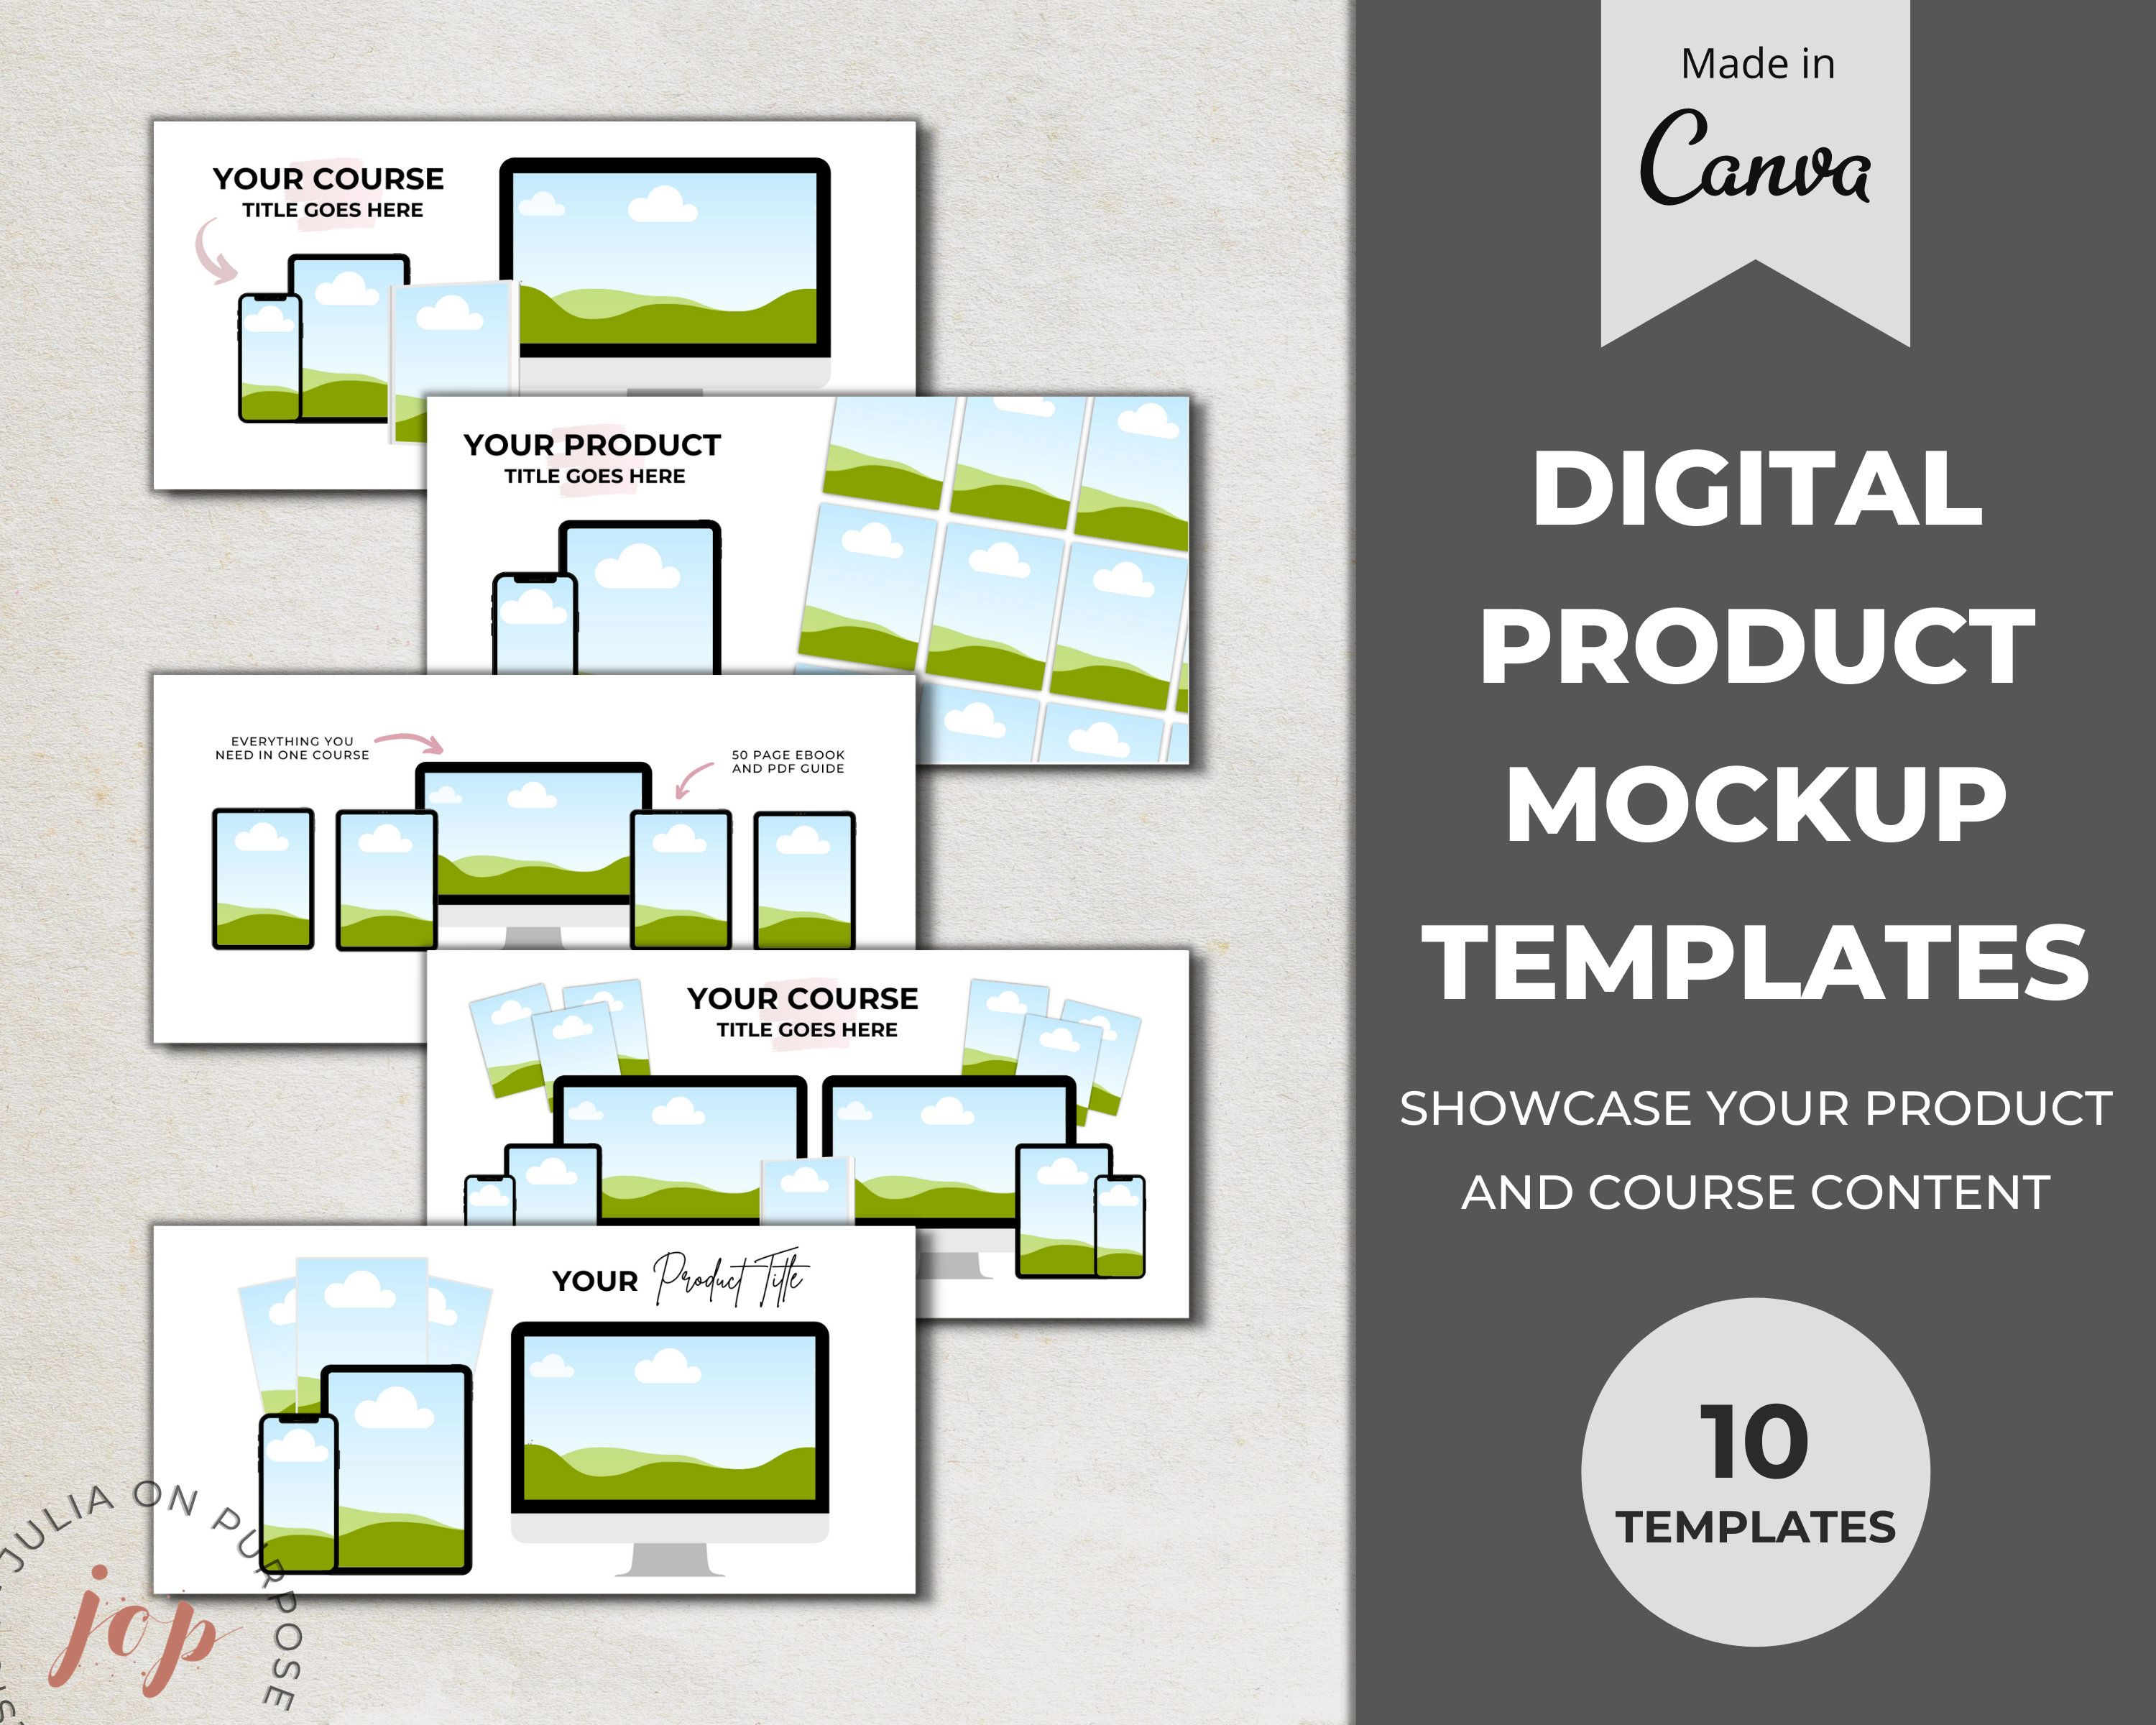 Online Course Mockup Templates Digital Product Tech Mockups Etsy In 2021 Mockup Templates Ebook Template Stock Photo Sites